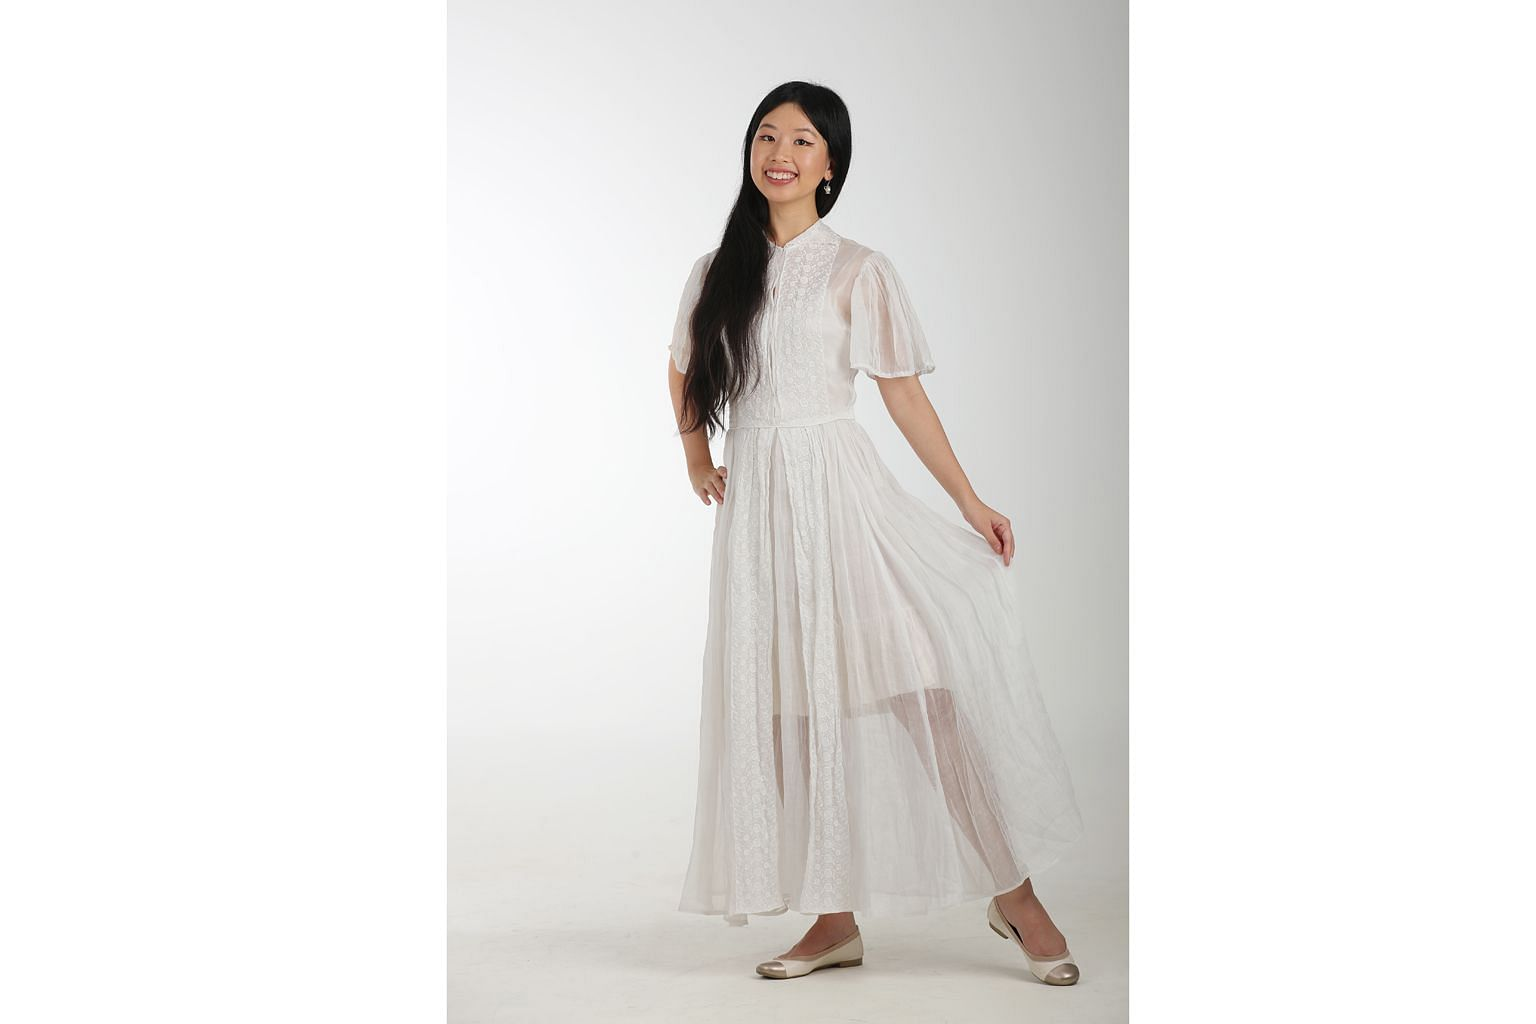 The Sunday Times writer Olivia Ho in her white silk organza gown, which she bought for $42.50 in a sale from United States-based Etsy store Simplicity Is Bliss.